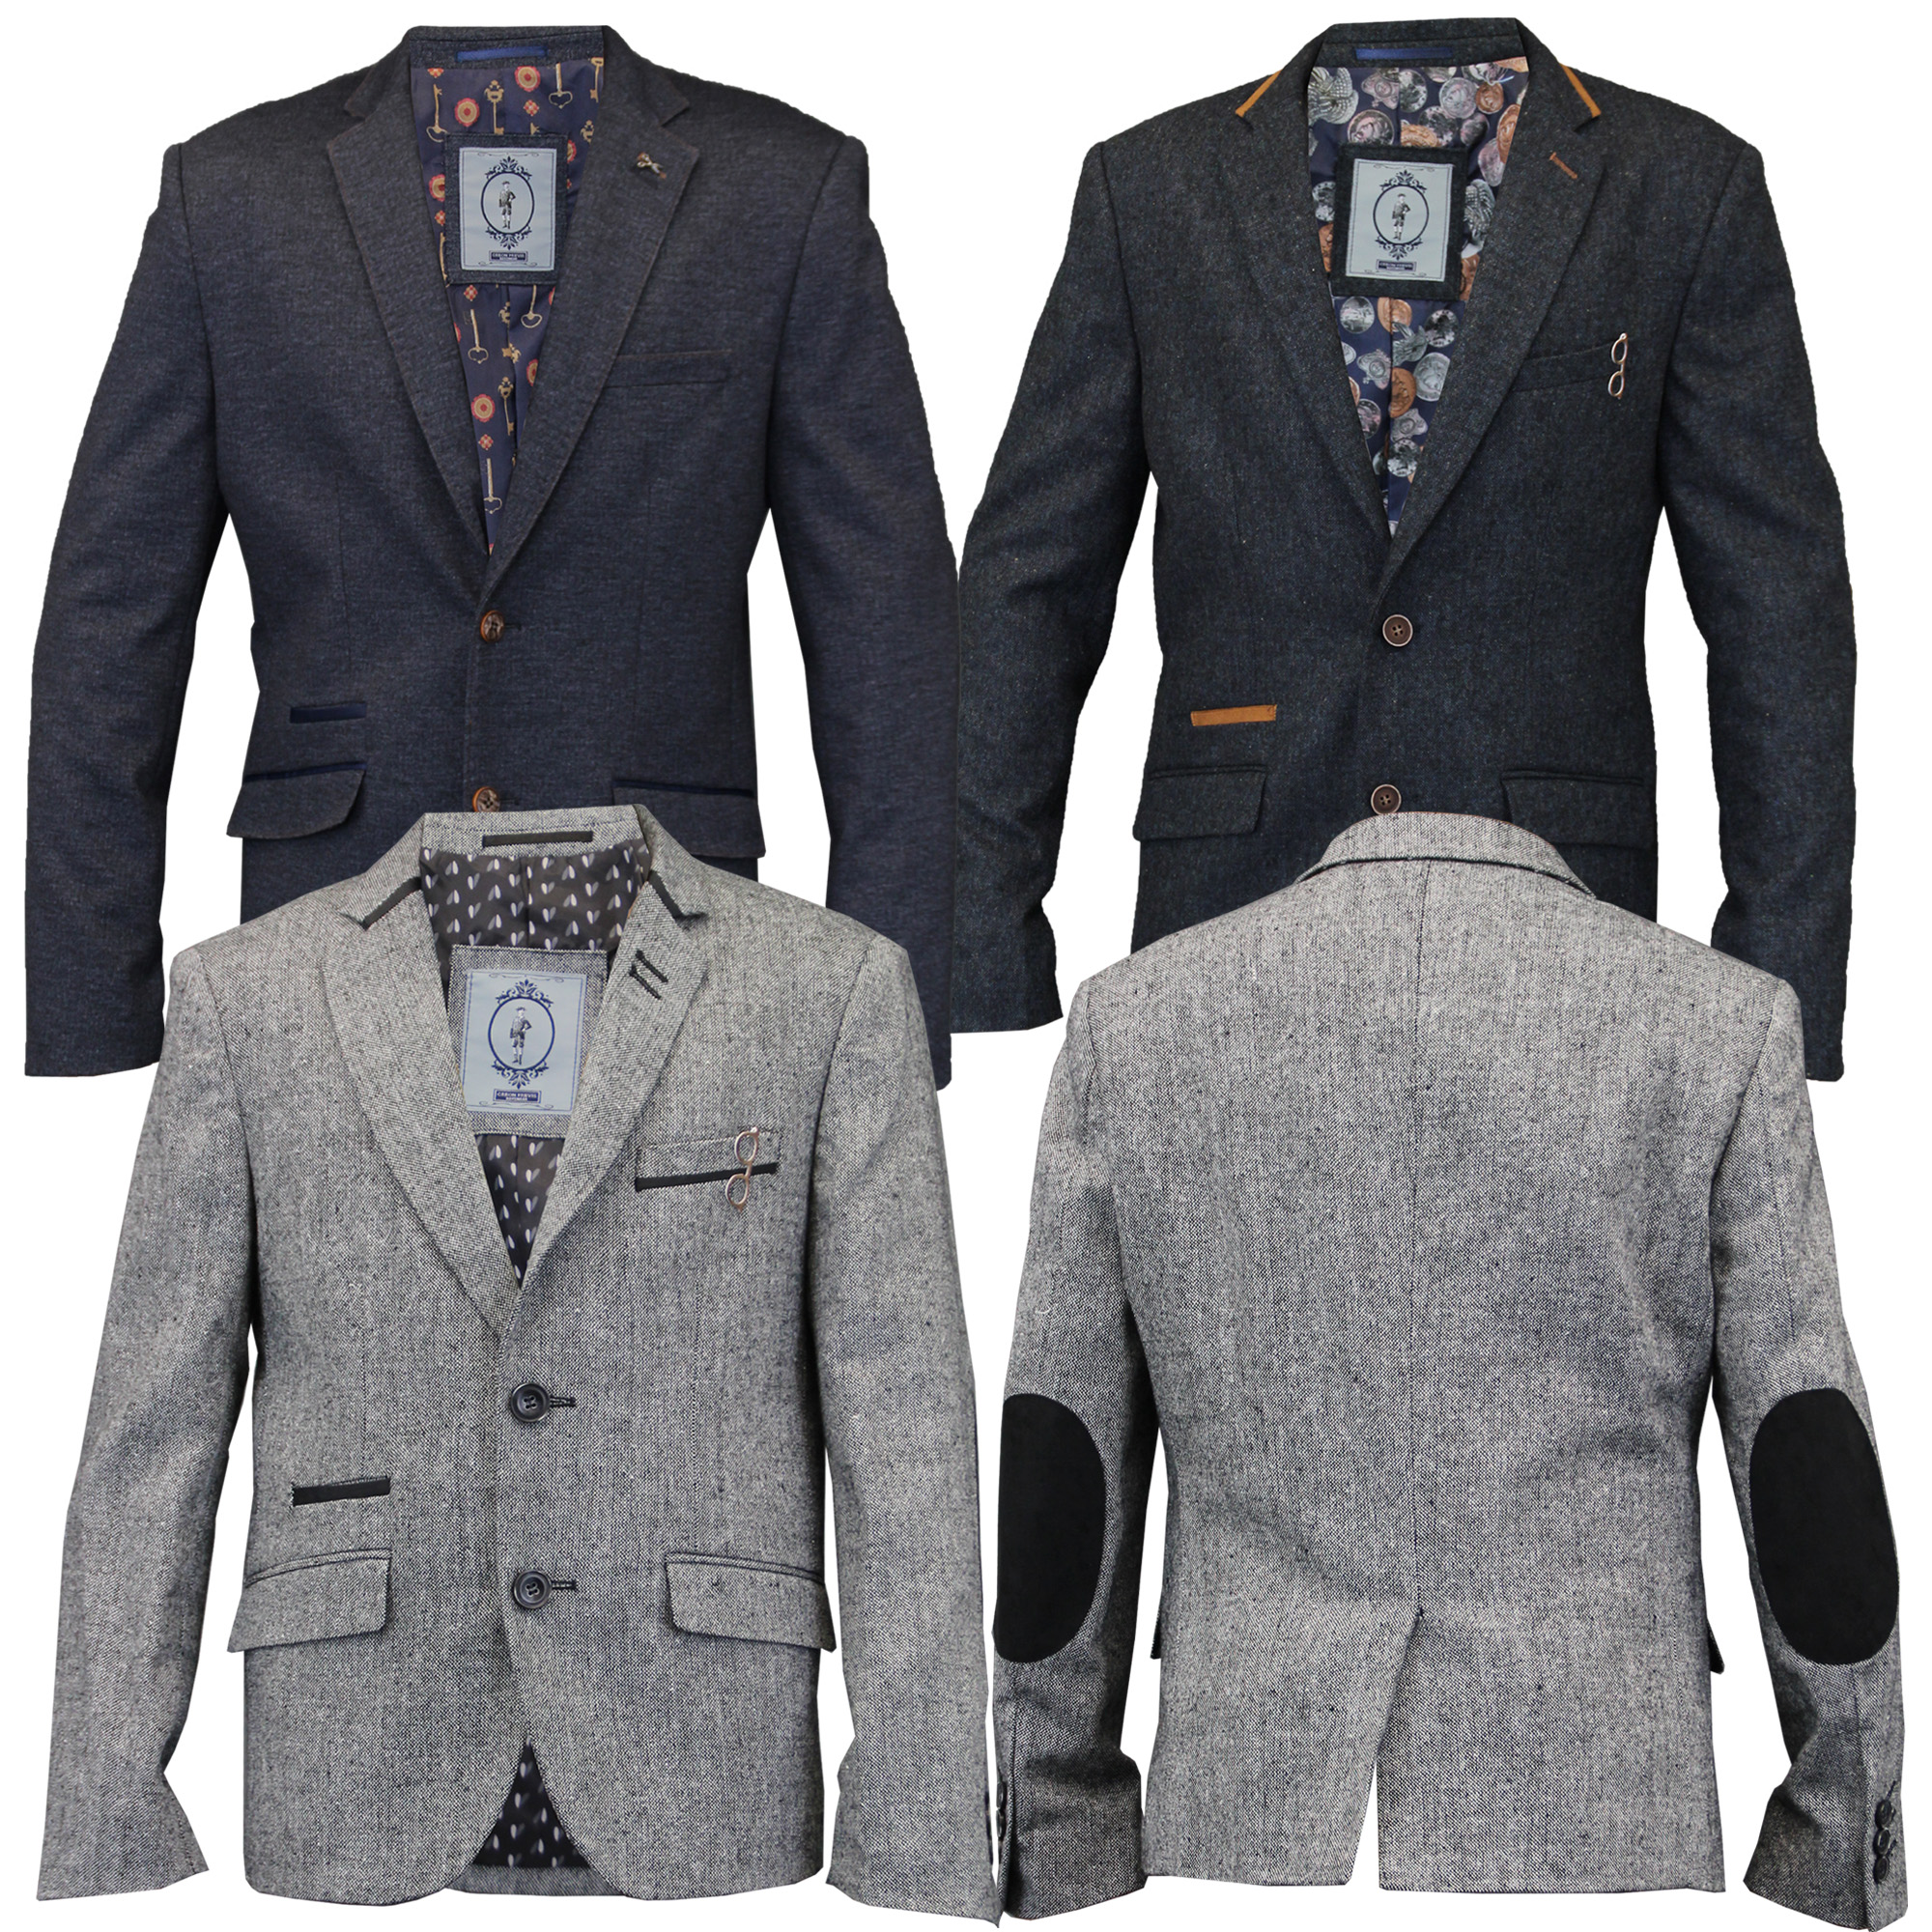 Gucci Boys' Embroidered Wool Blazer Grey. Guaranteed Authentic! Gucci Infant boys' grey Gucci wool blazer with notched lapels, embroidered logo patch at front, dual flap pockets at waist and button closures at front. Designer size months.